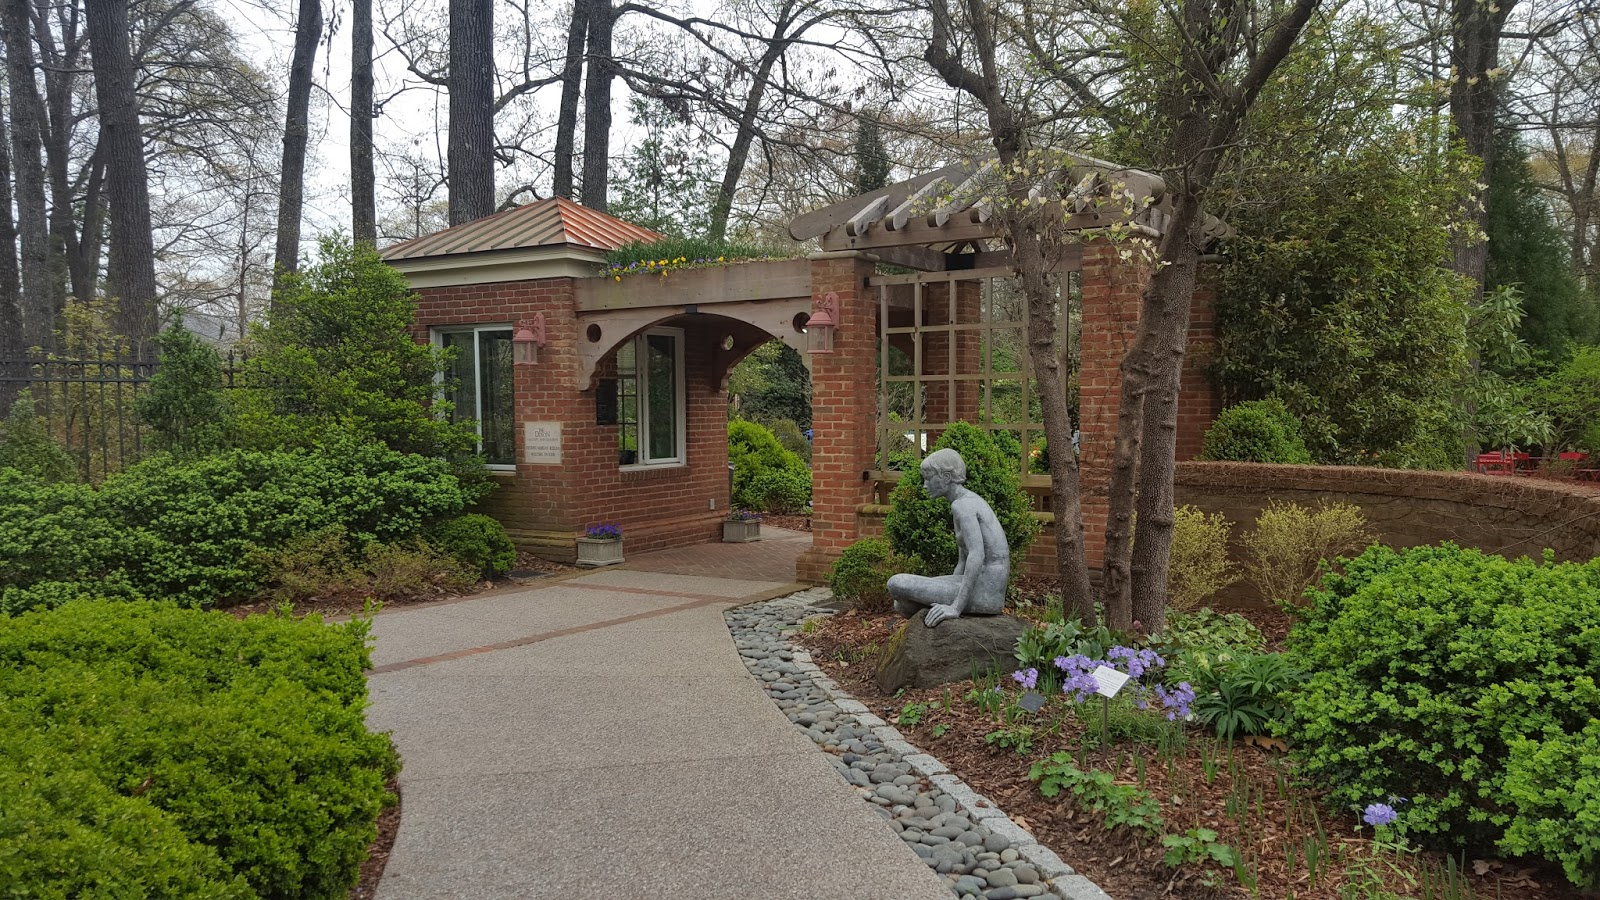 Divers and Sundry: Tulips at the Dixon